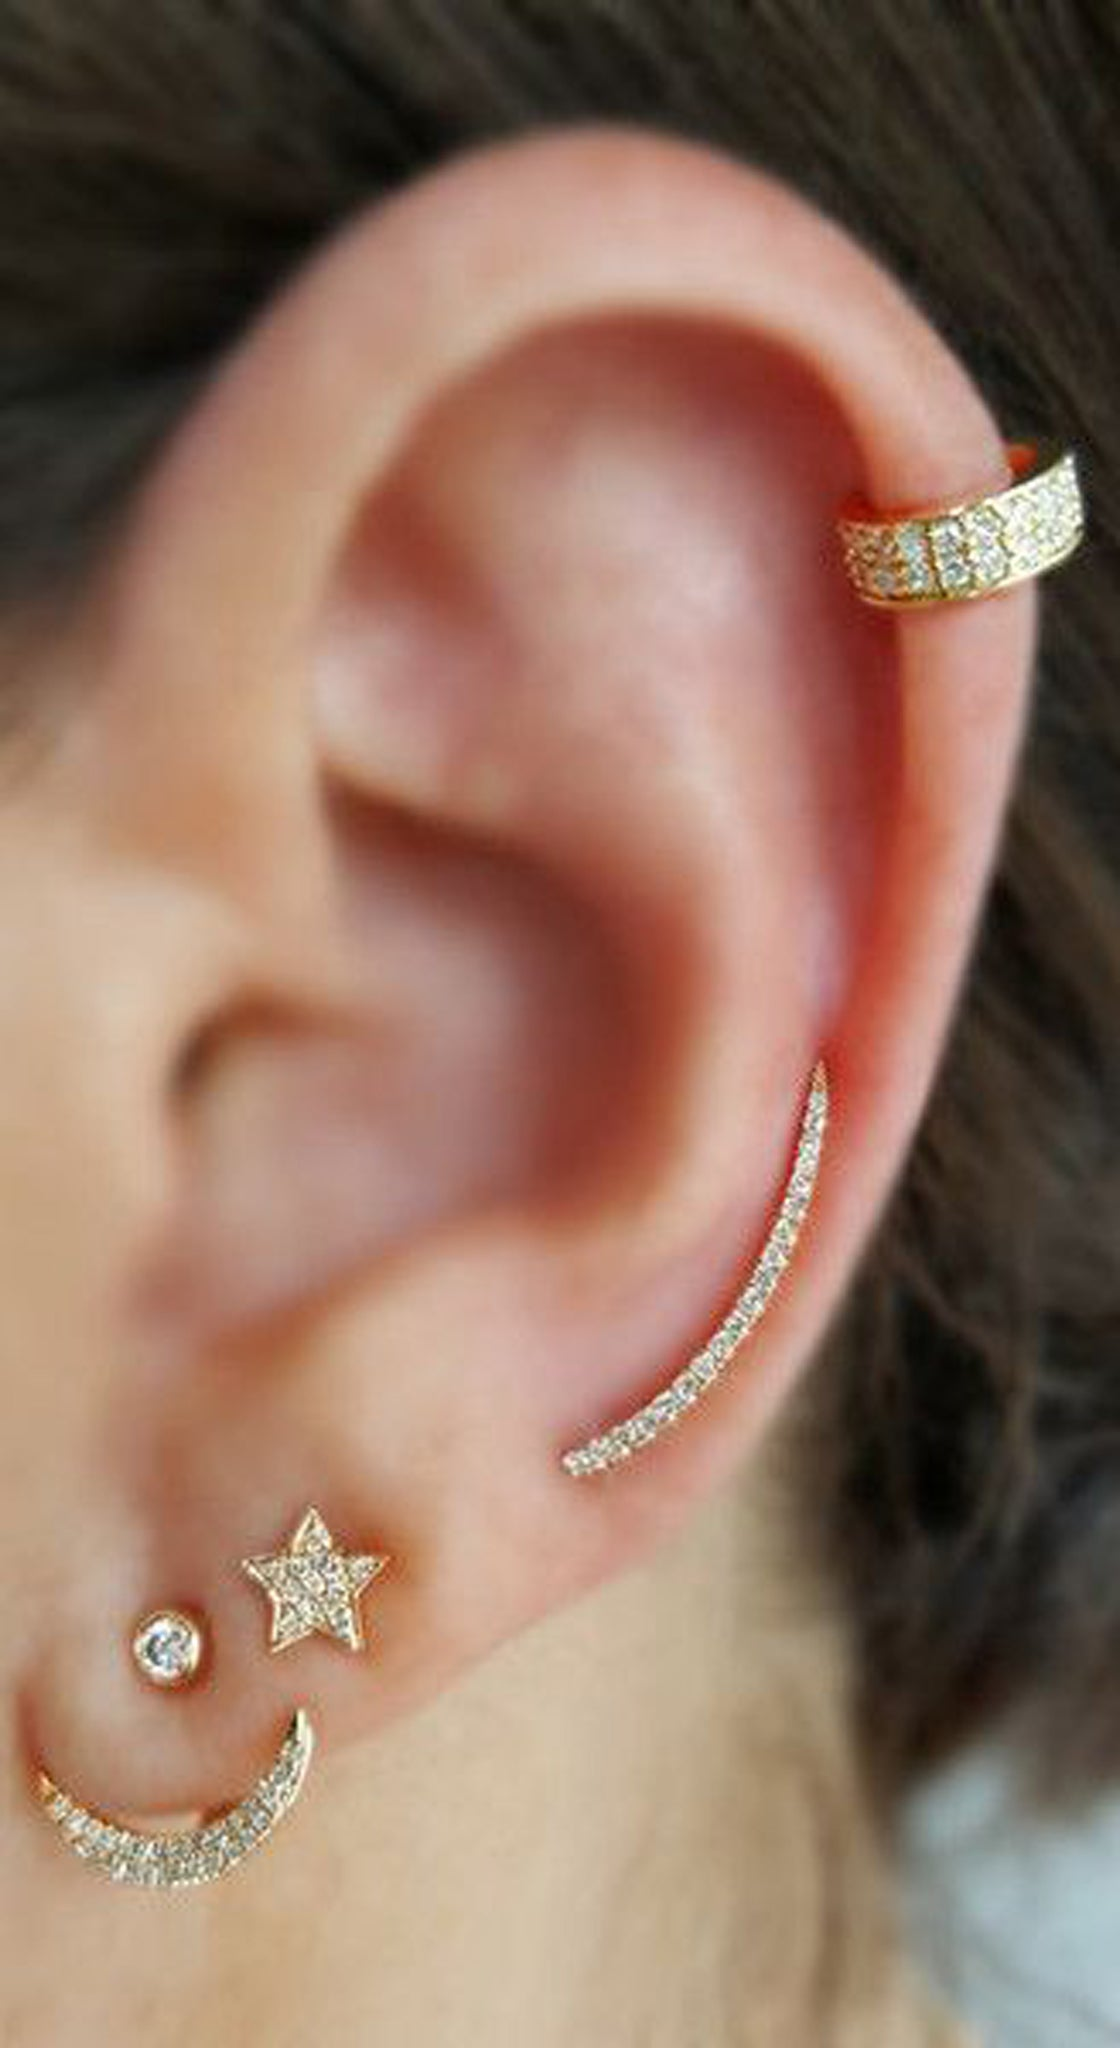 Classy Gold Ear Piercing Jewelry Ideas Combinations at MyBodiArt.com - Single Cartilage Crystal Ring - Ear Climber Earring -  Star Crescent Moon